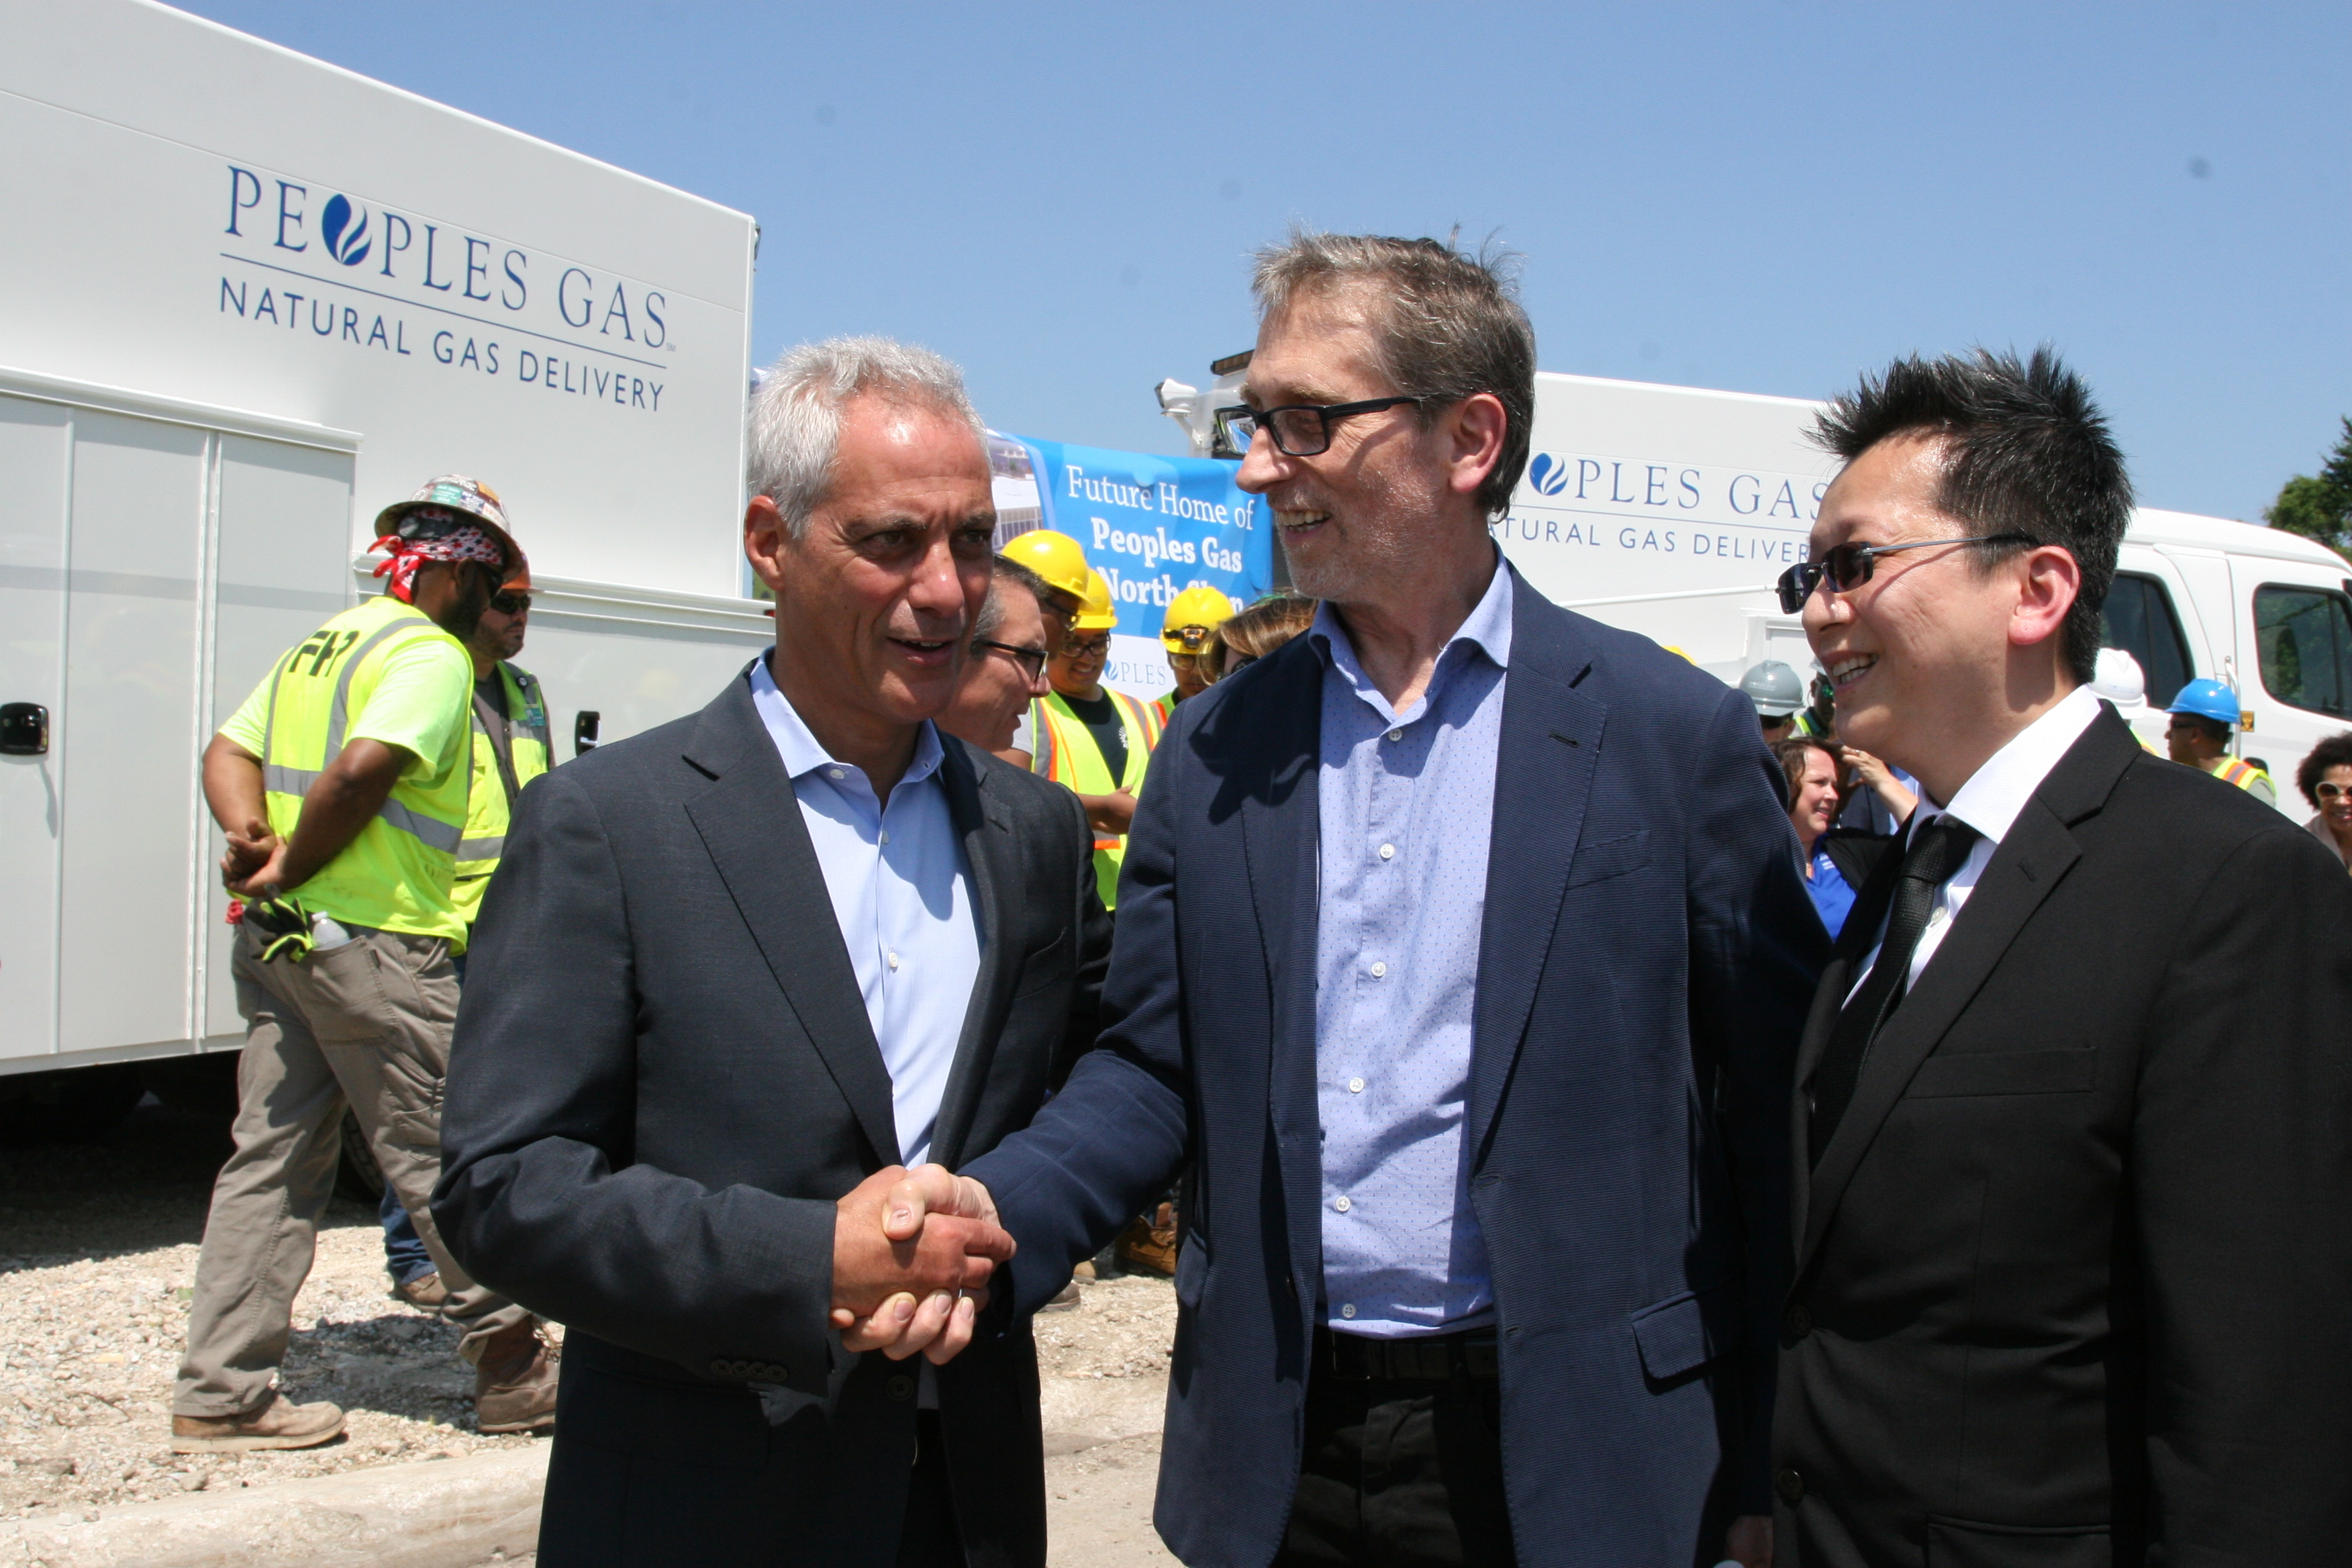 Peoples-Gas-North-Shop-groundbreaking-2.